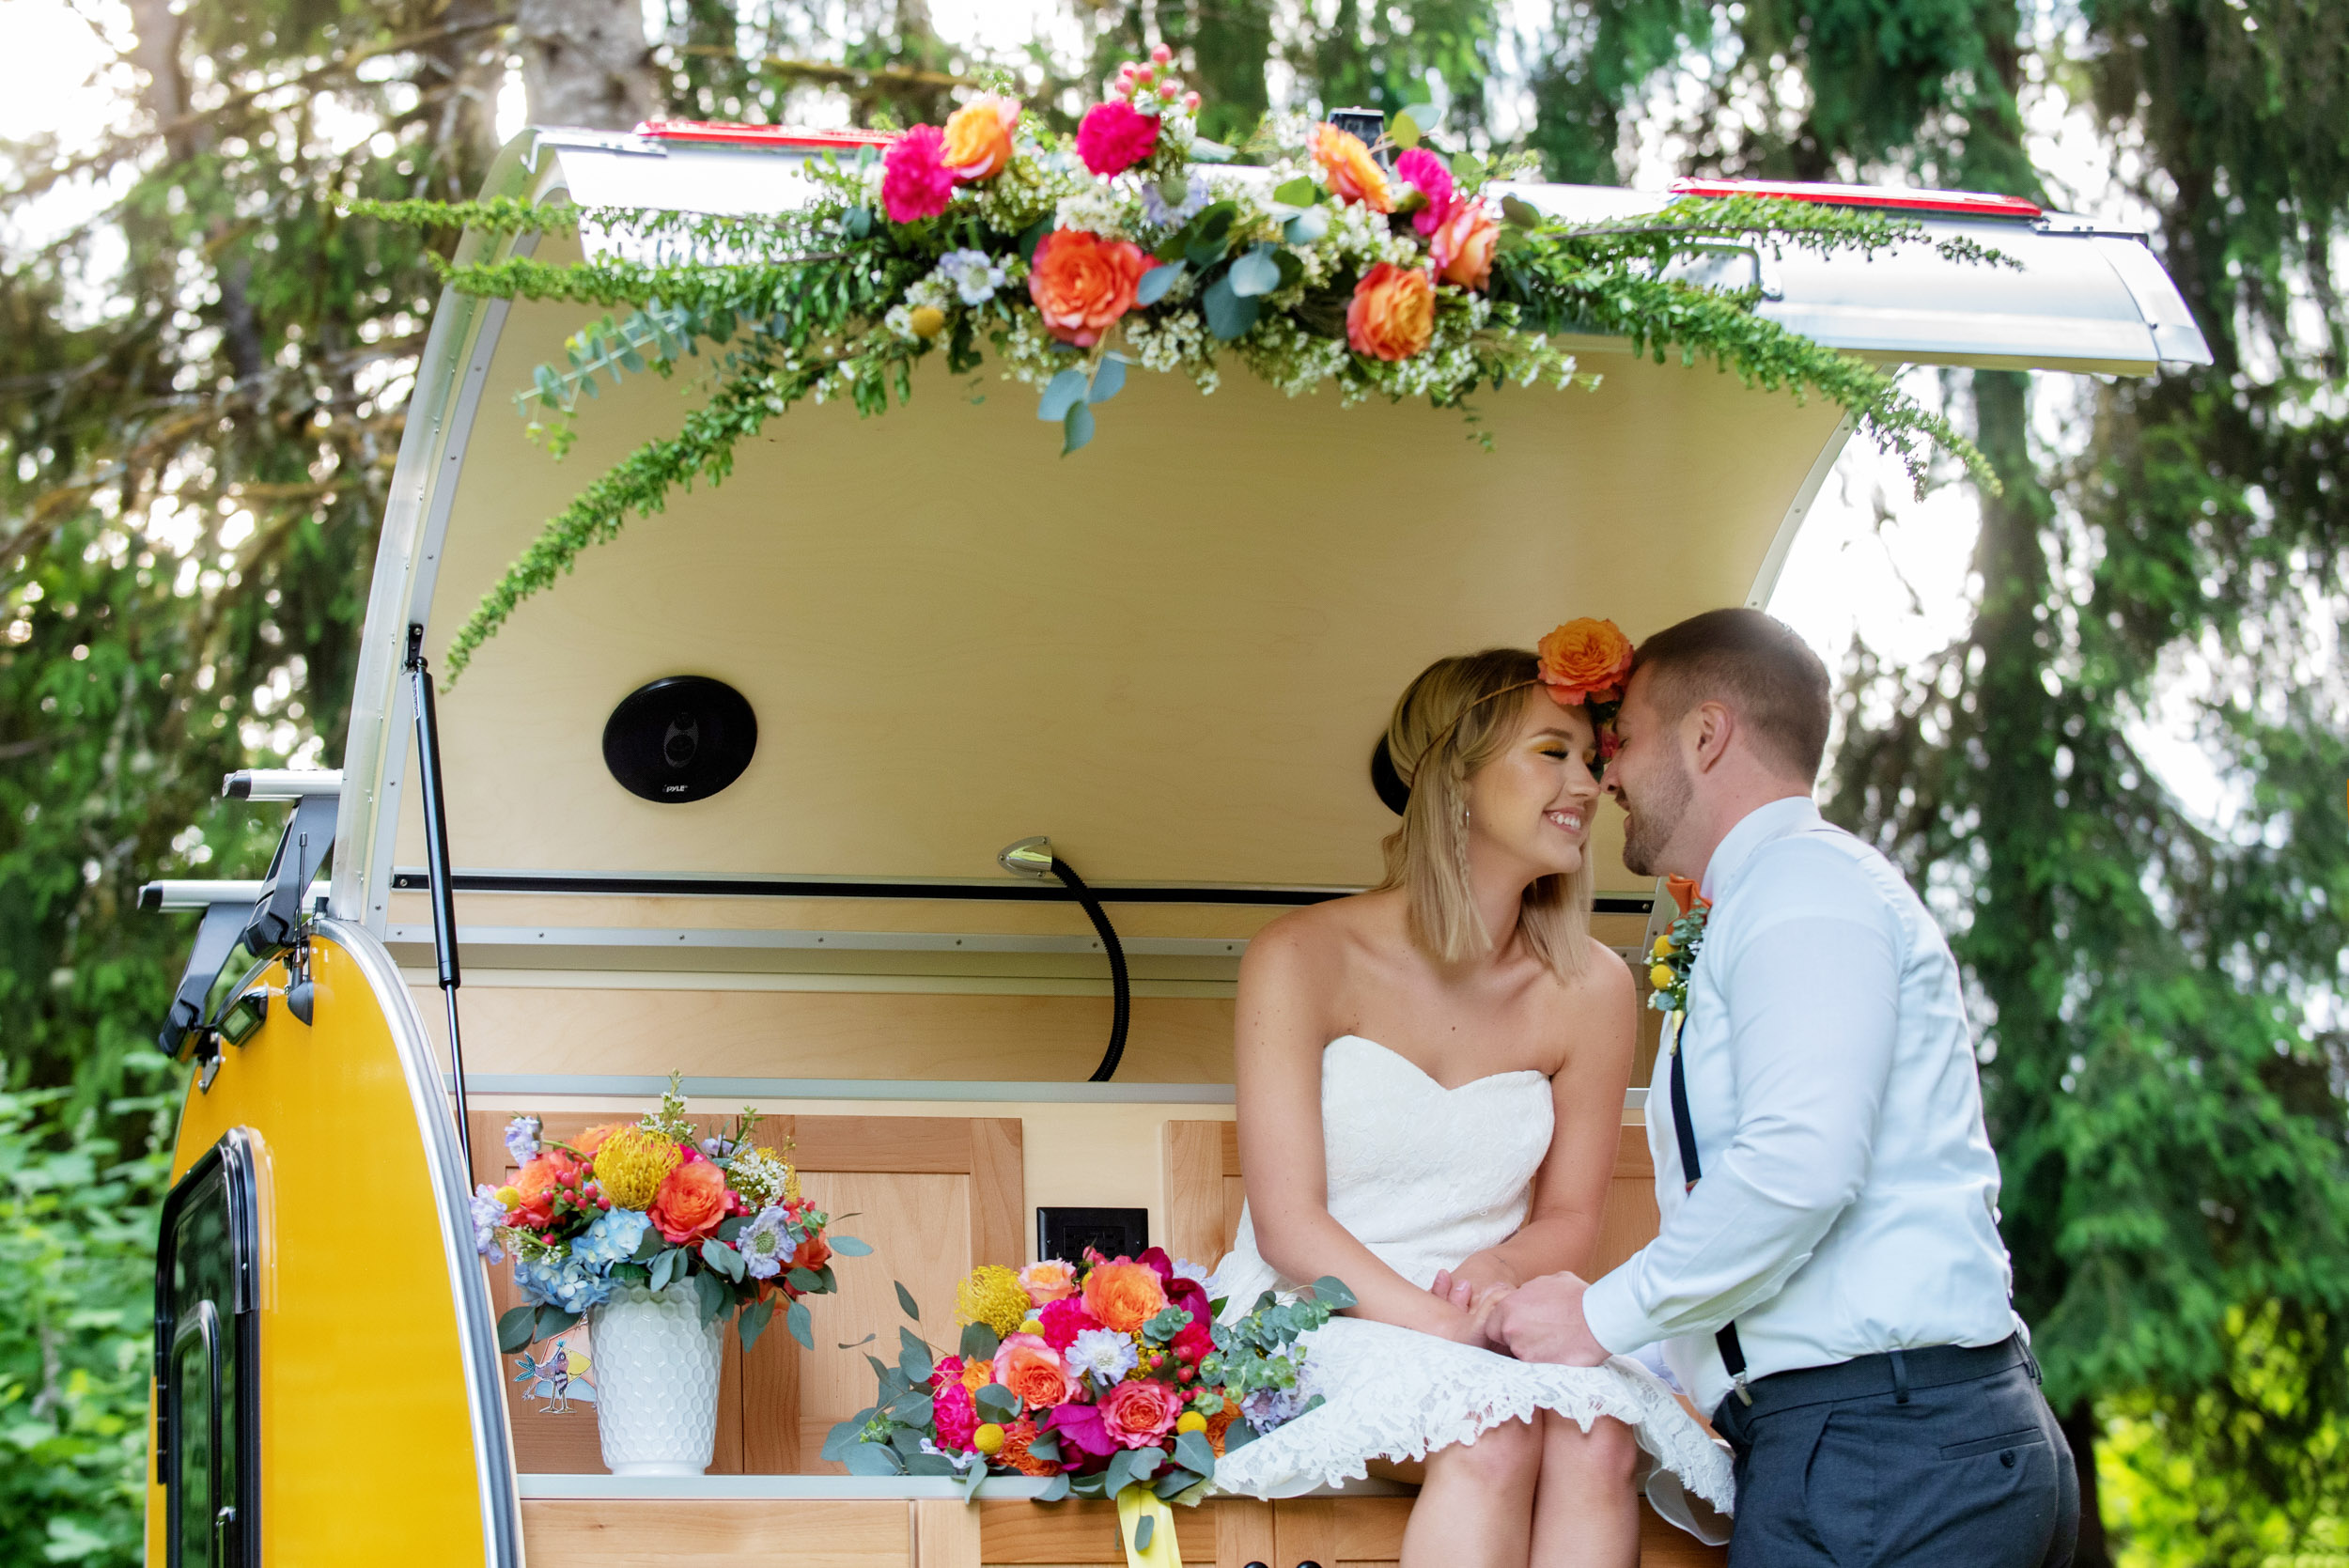 cute couple, bride and groom, love is not cancelled, love inspiration, wedding idea, wedding inspiration, altar installation, wedding florals, oregon wedding flowers, oregon wedding florist, portland wedding florist, portland wedding flowers, bridal bouquet, elopement flowers